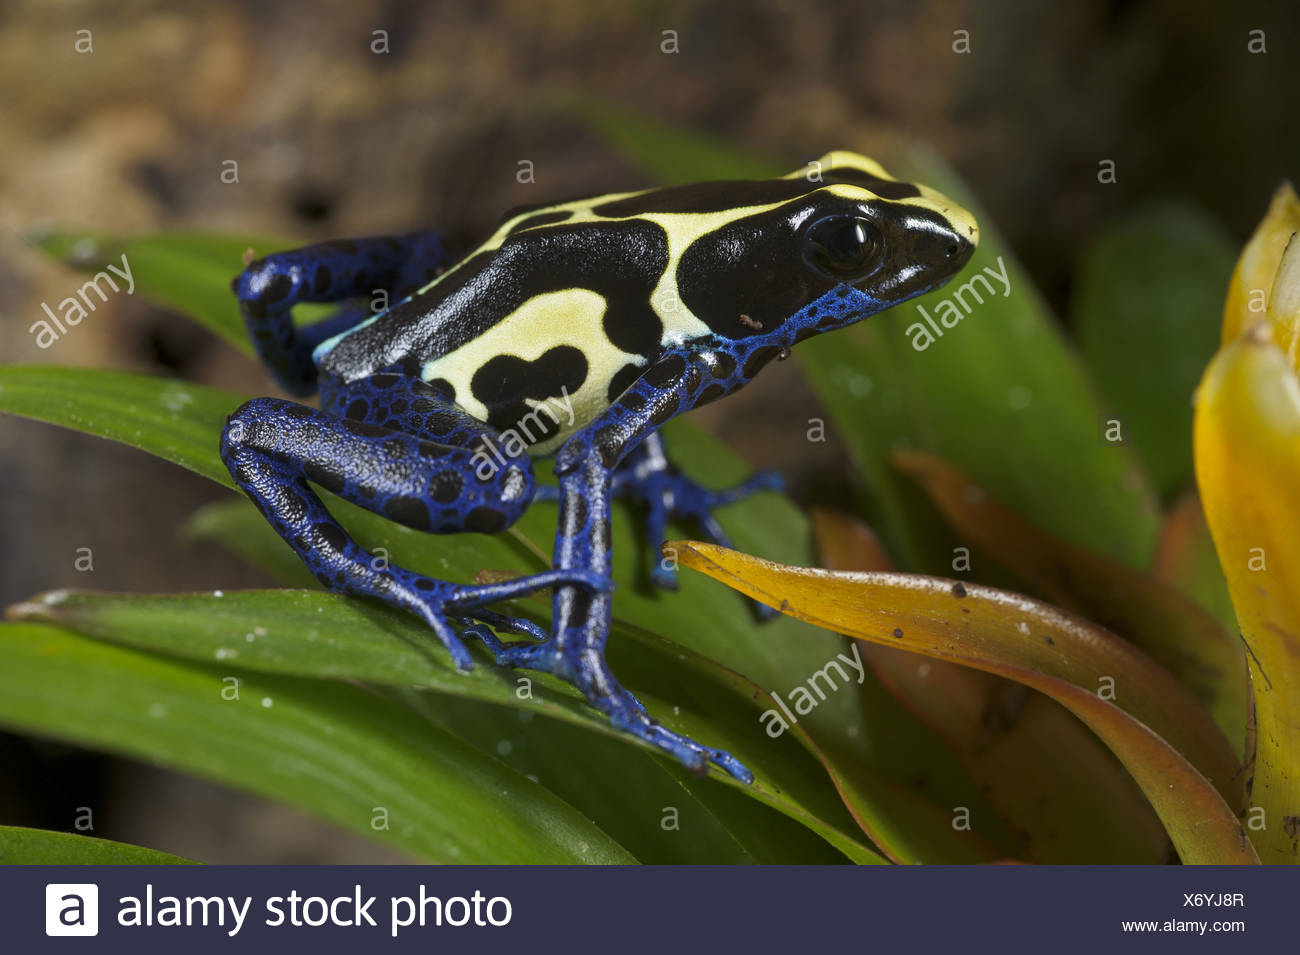 One Frog Stockfotos & One Frog Bilder - Seite 10 - Alamy